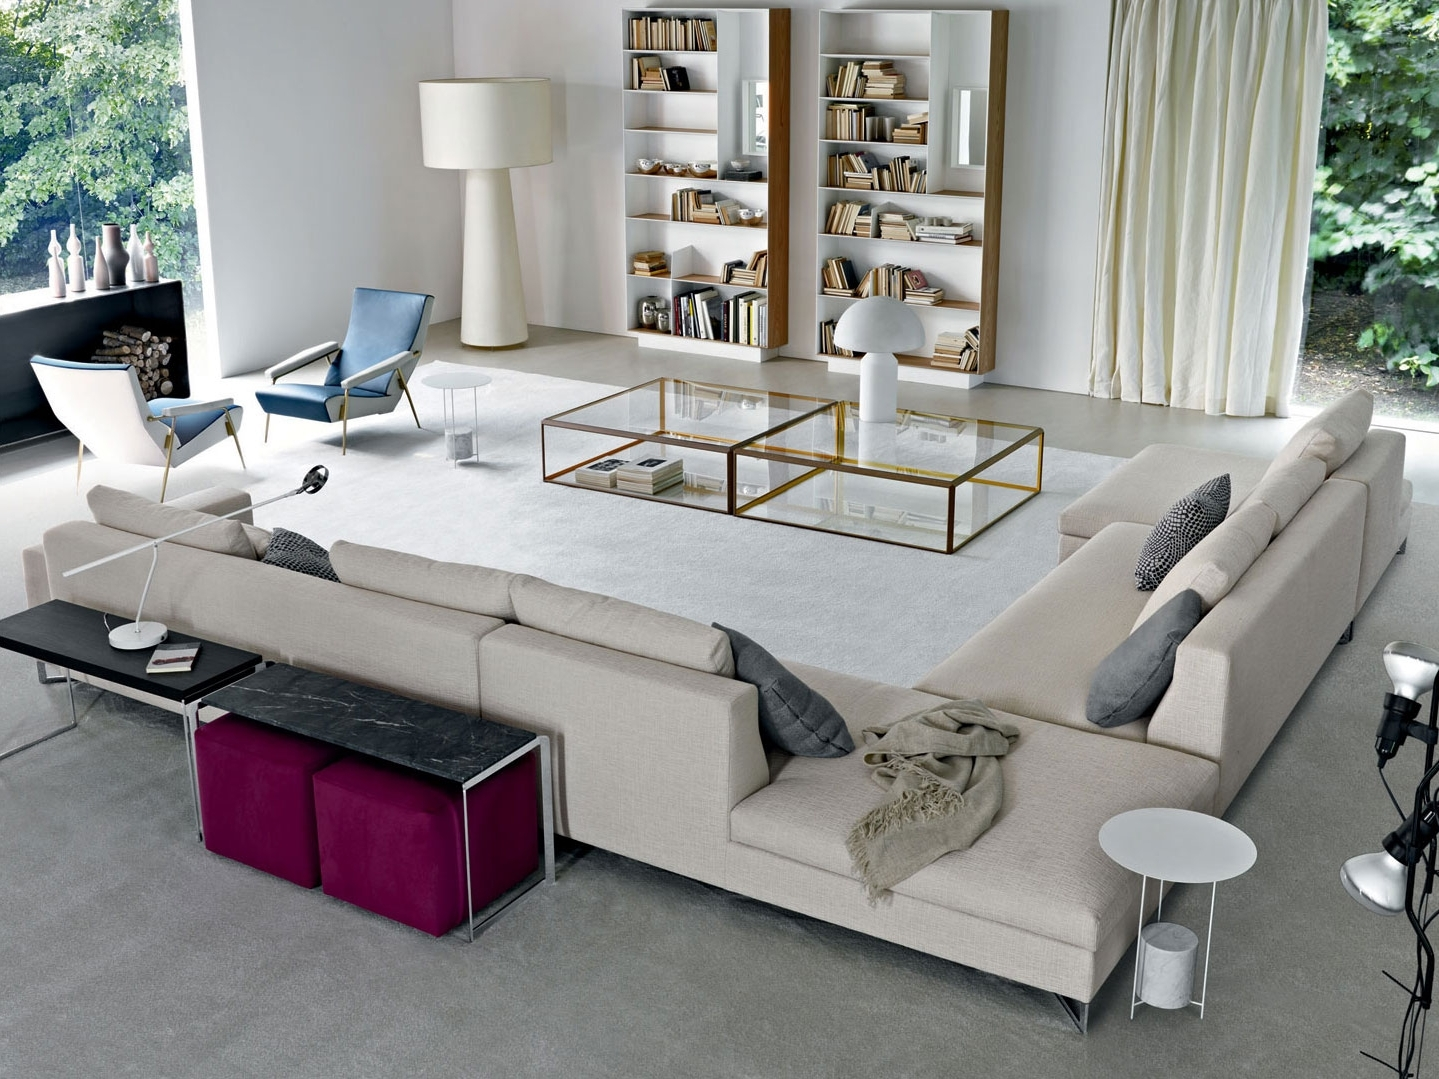 Large Sectional Sofas With Regard To Preferred Sofa : Sectional Sofa With Oversized Ottoman Oversized Microfiber (View 7 of 15)